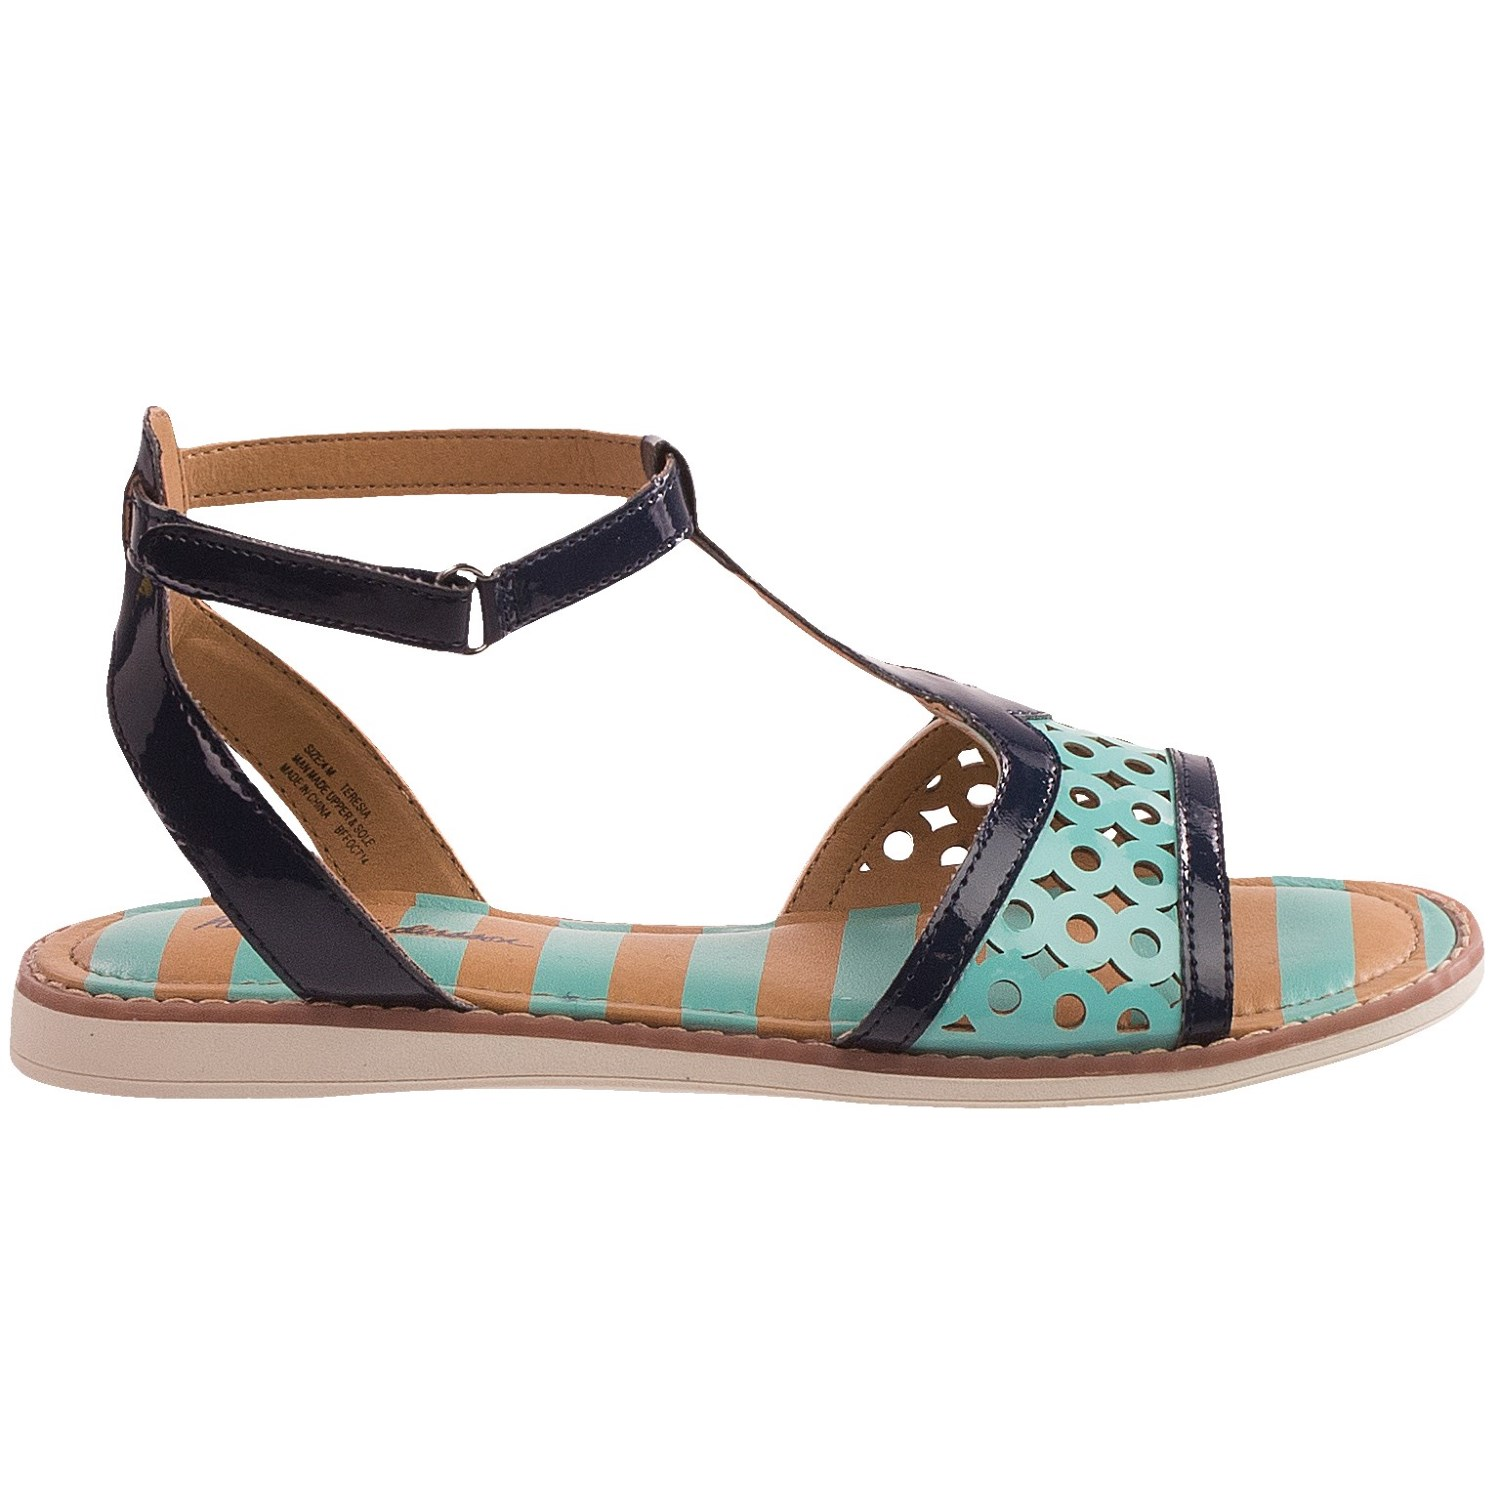 Hanna Andersson Teresia T Strap Sandals For Little Girls